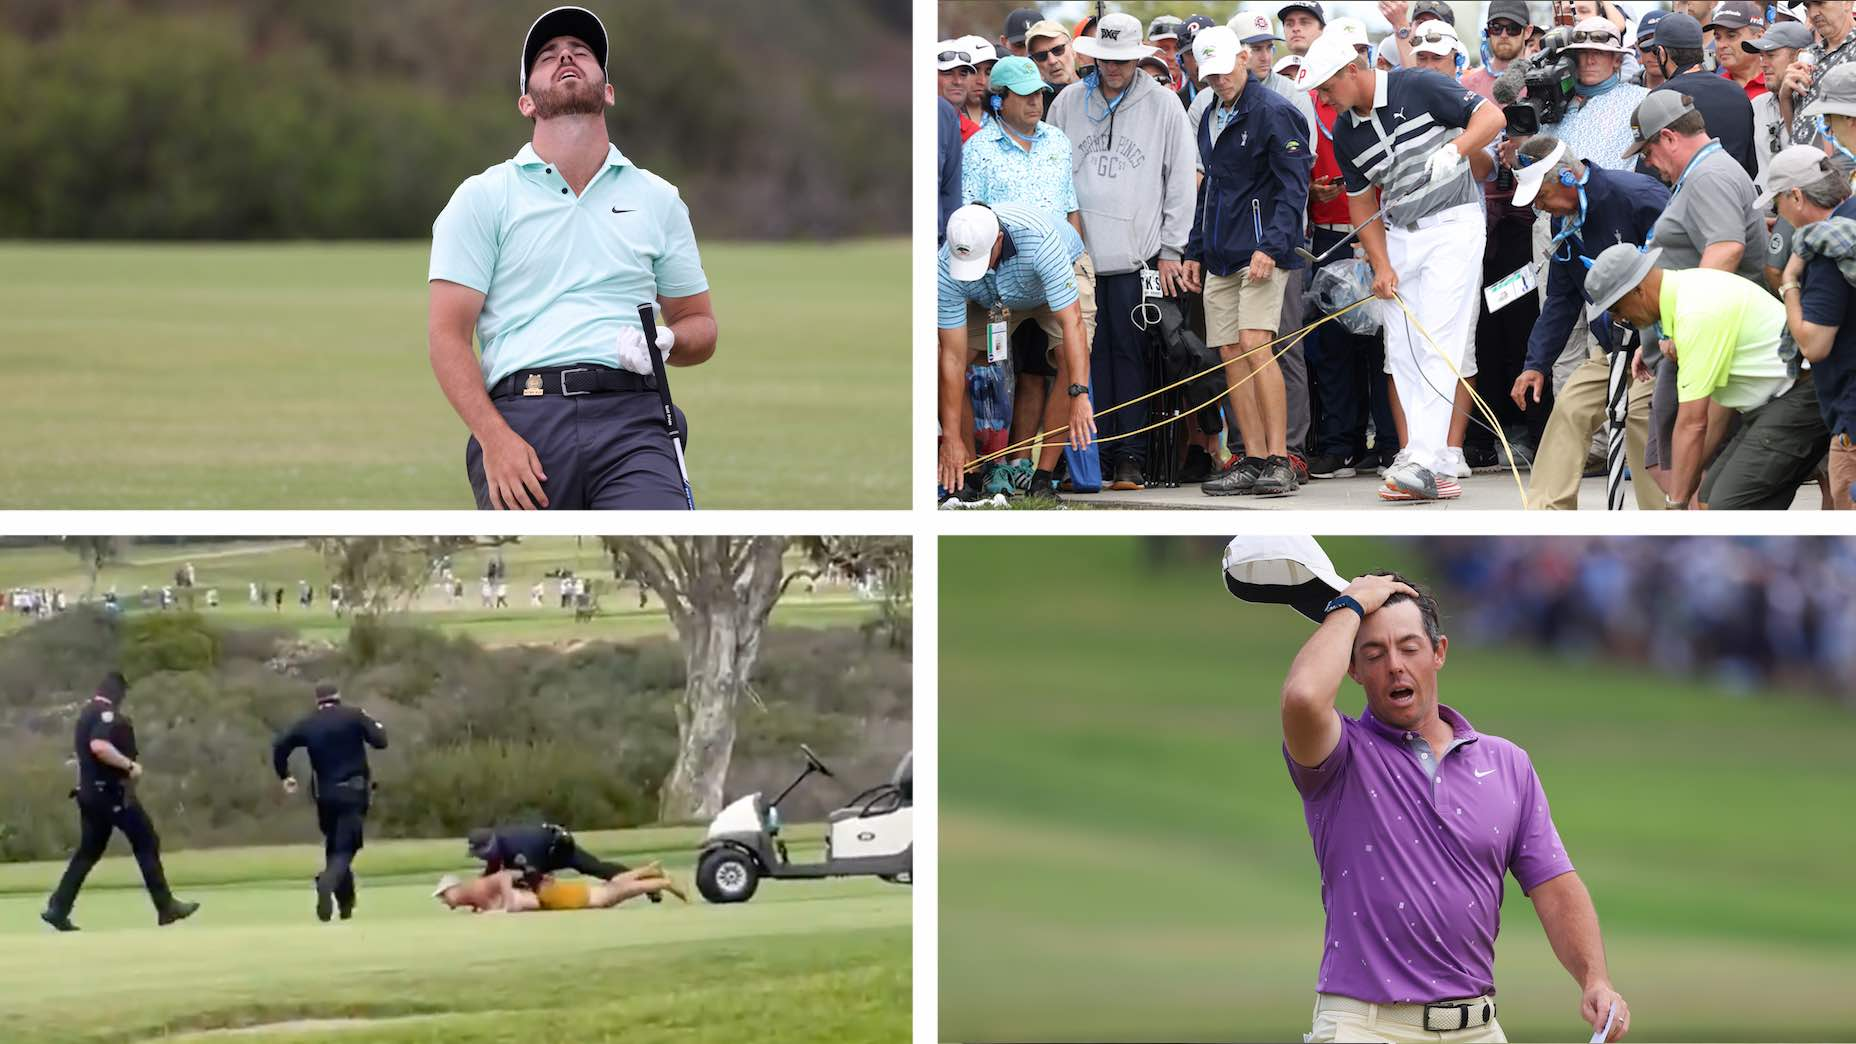 The U.S. Open turned to chaos on the back nine.